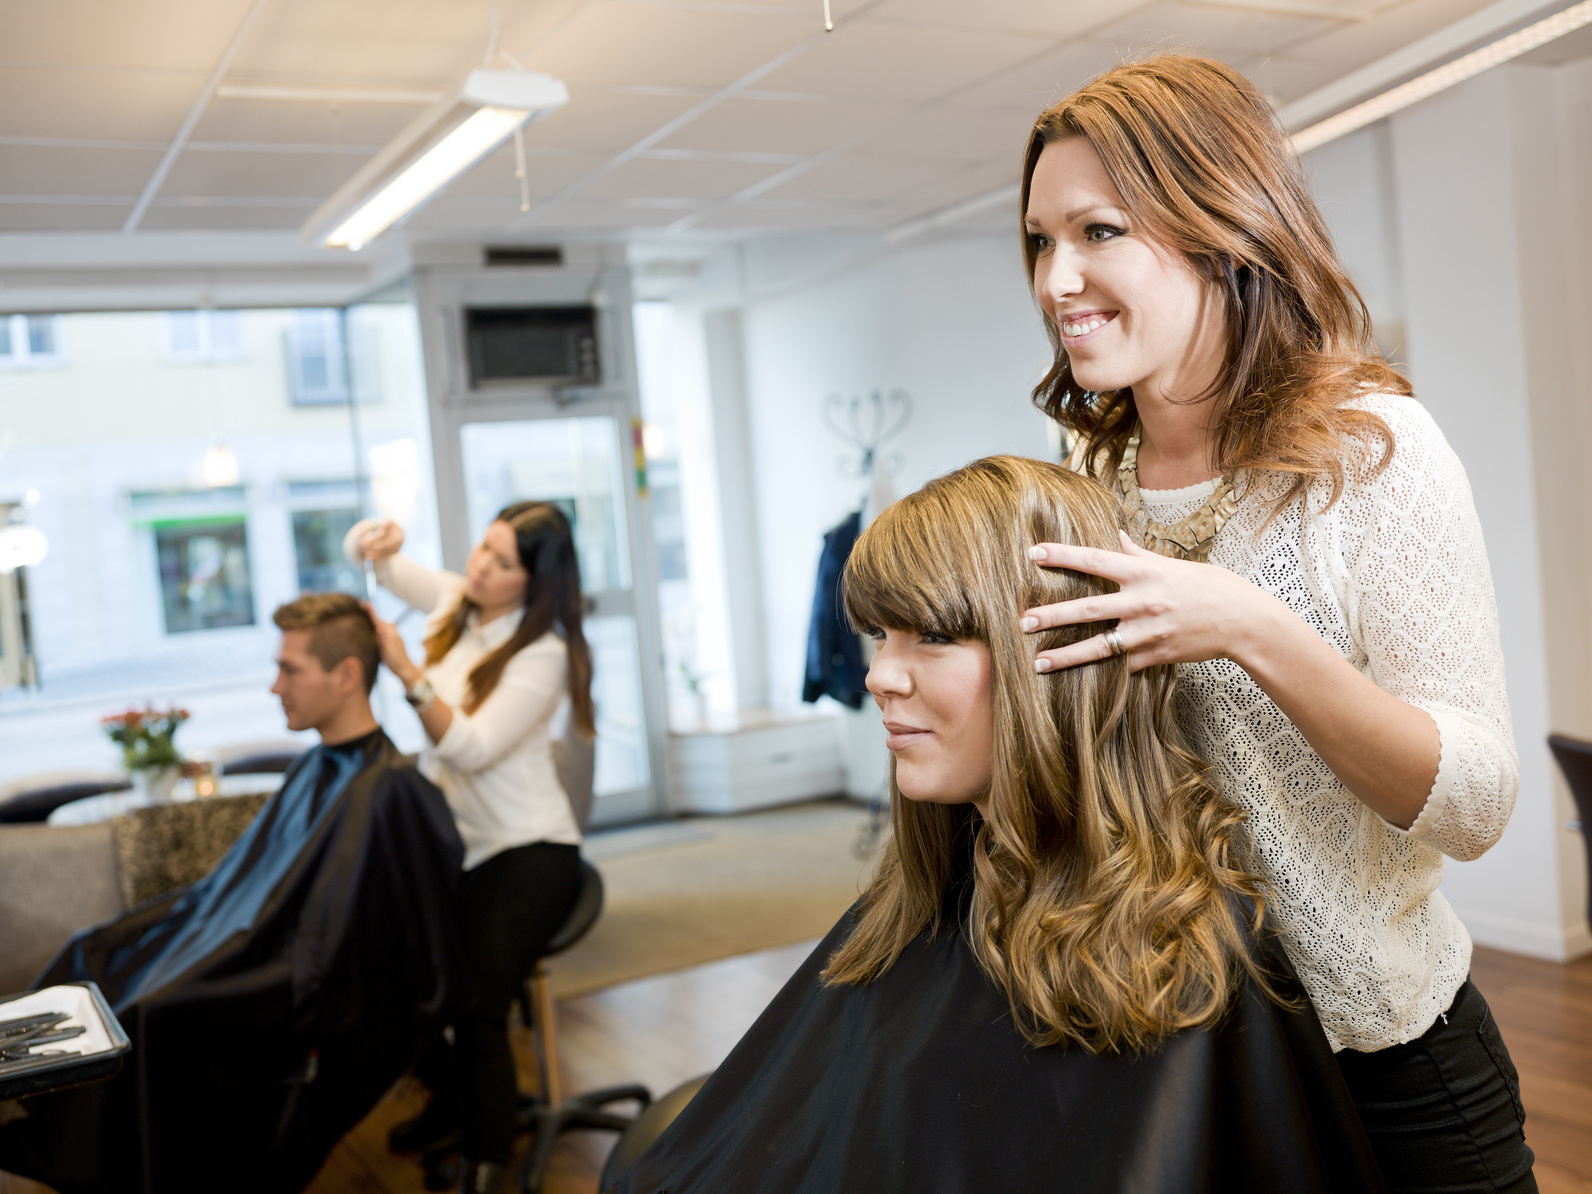 Beauty Industry Booming With Independent Contractors